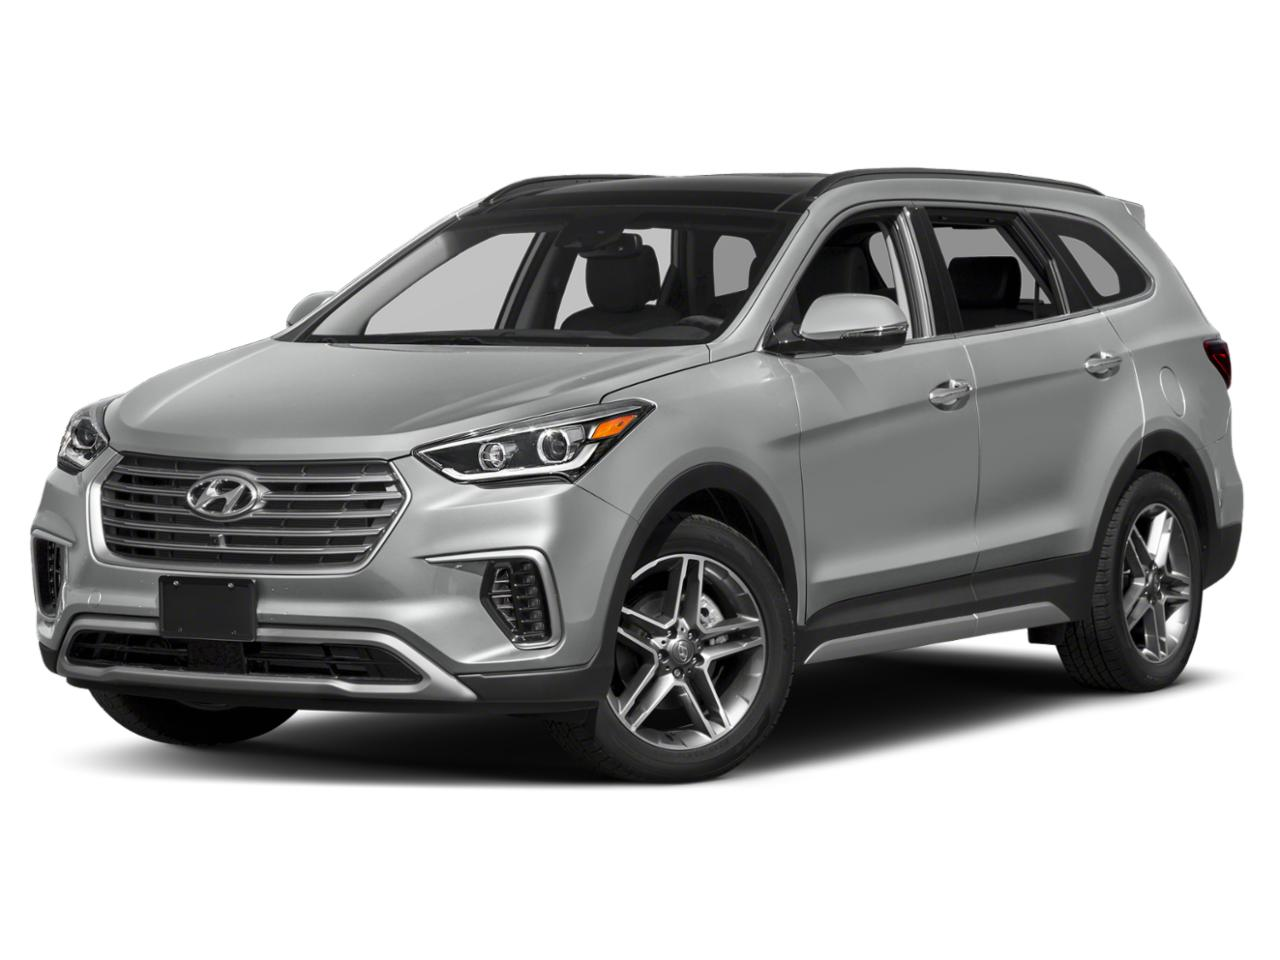 2019 Hyundai Santa Fe XL Vehicle Photo in Nashua, NH 03060